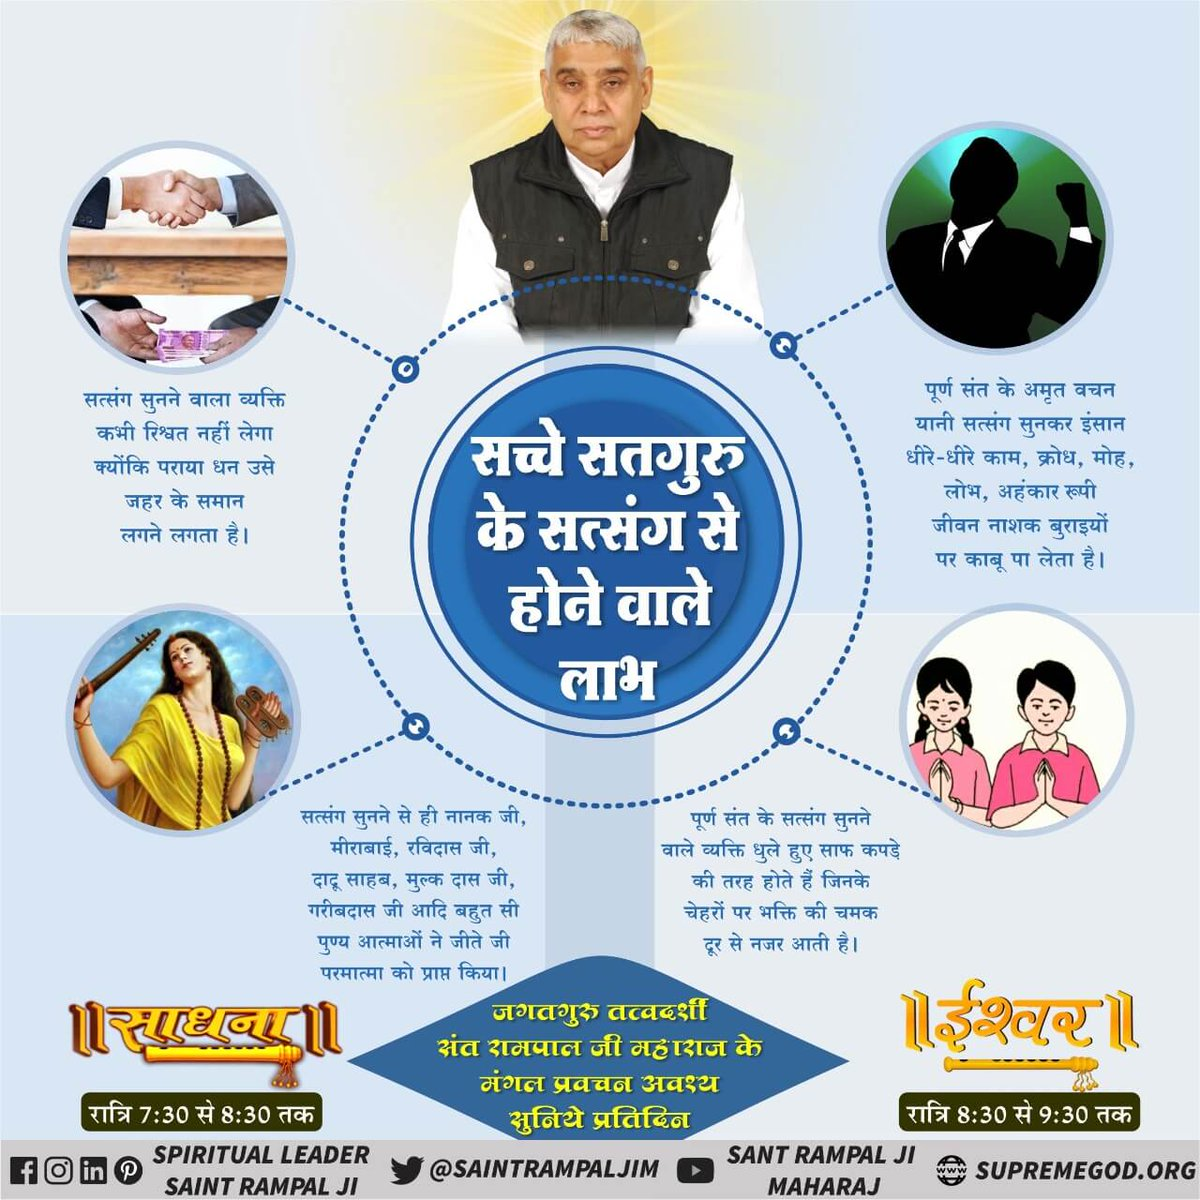 #GodMorningSaturday Satsang is the same which is according to the scriptures and is certified  Watch Sadhana  TV everyday from 7:30 am to 8:30 pm,  so everyone is requested to see satsang <br>http://pic.twitter.com/GLQRm7mQCG